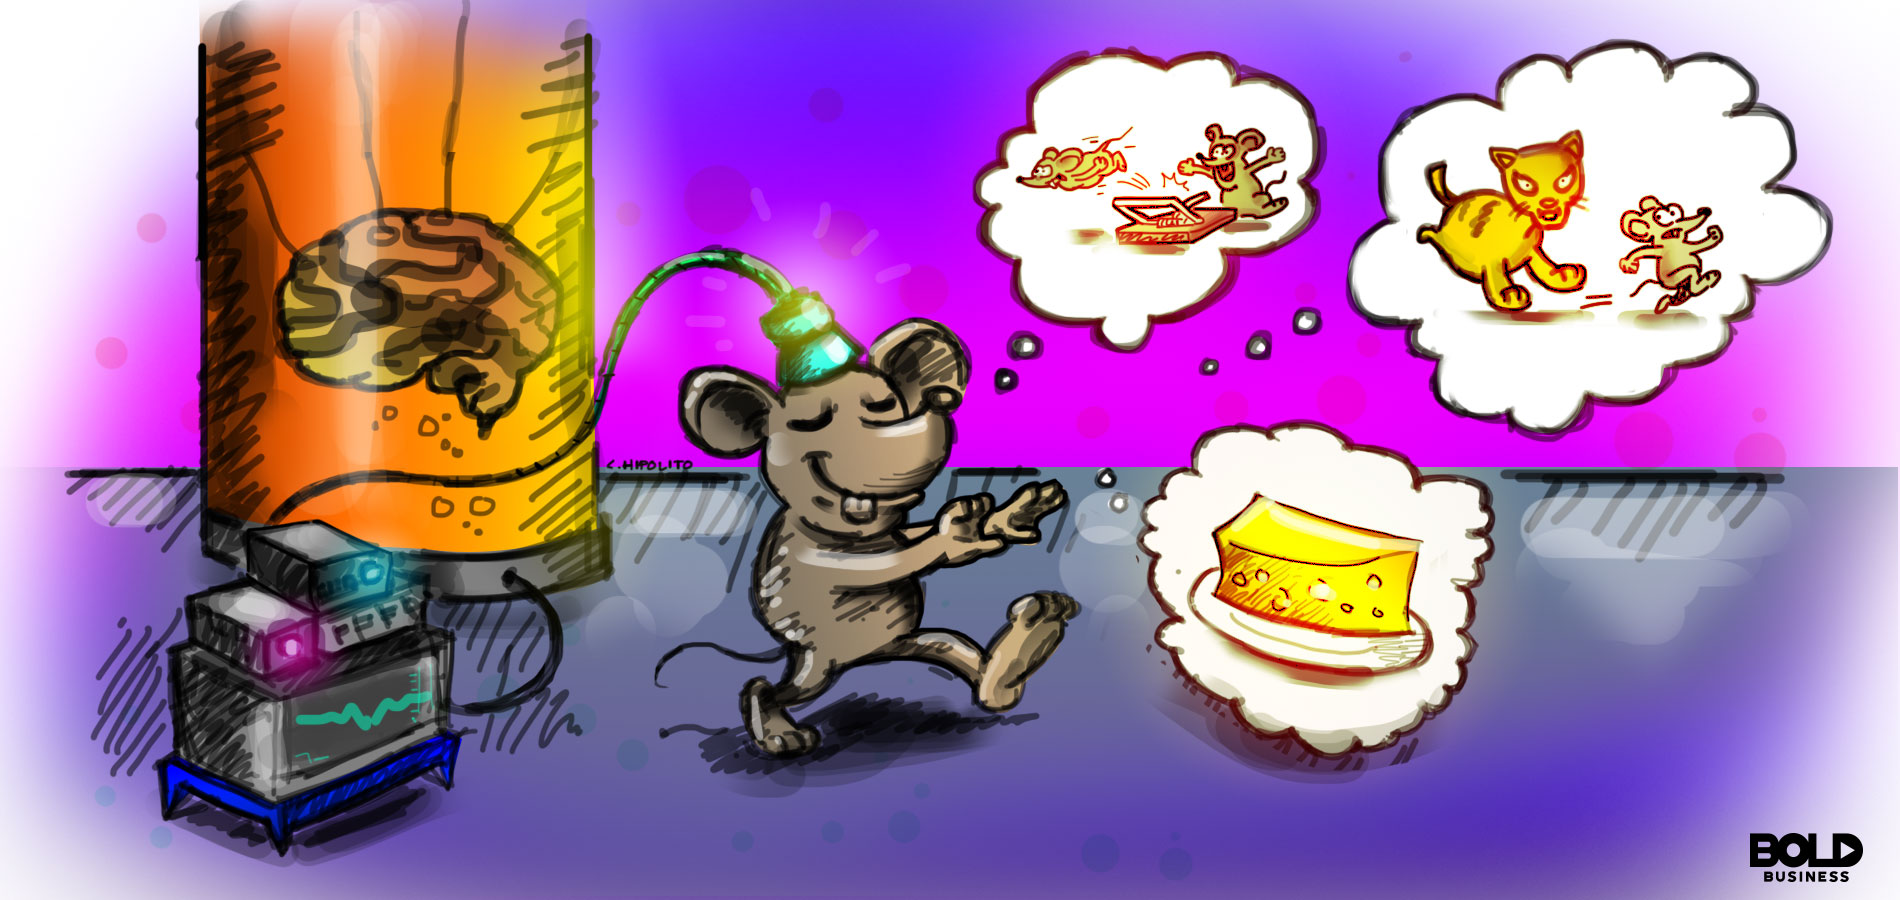 a cartoon of a lab mouse envisioning cheese and cats with the use of memory implantation technology